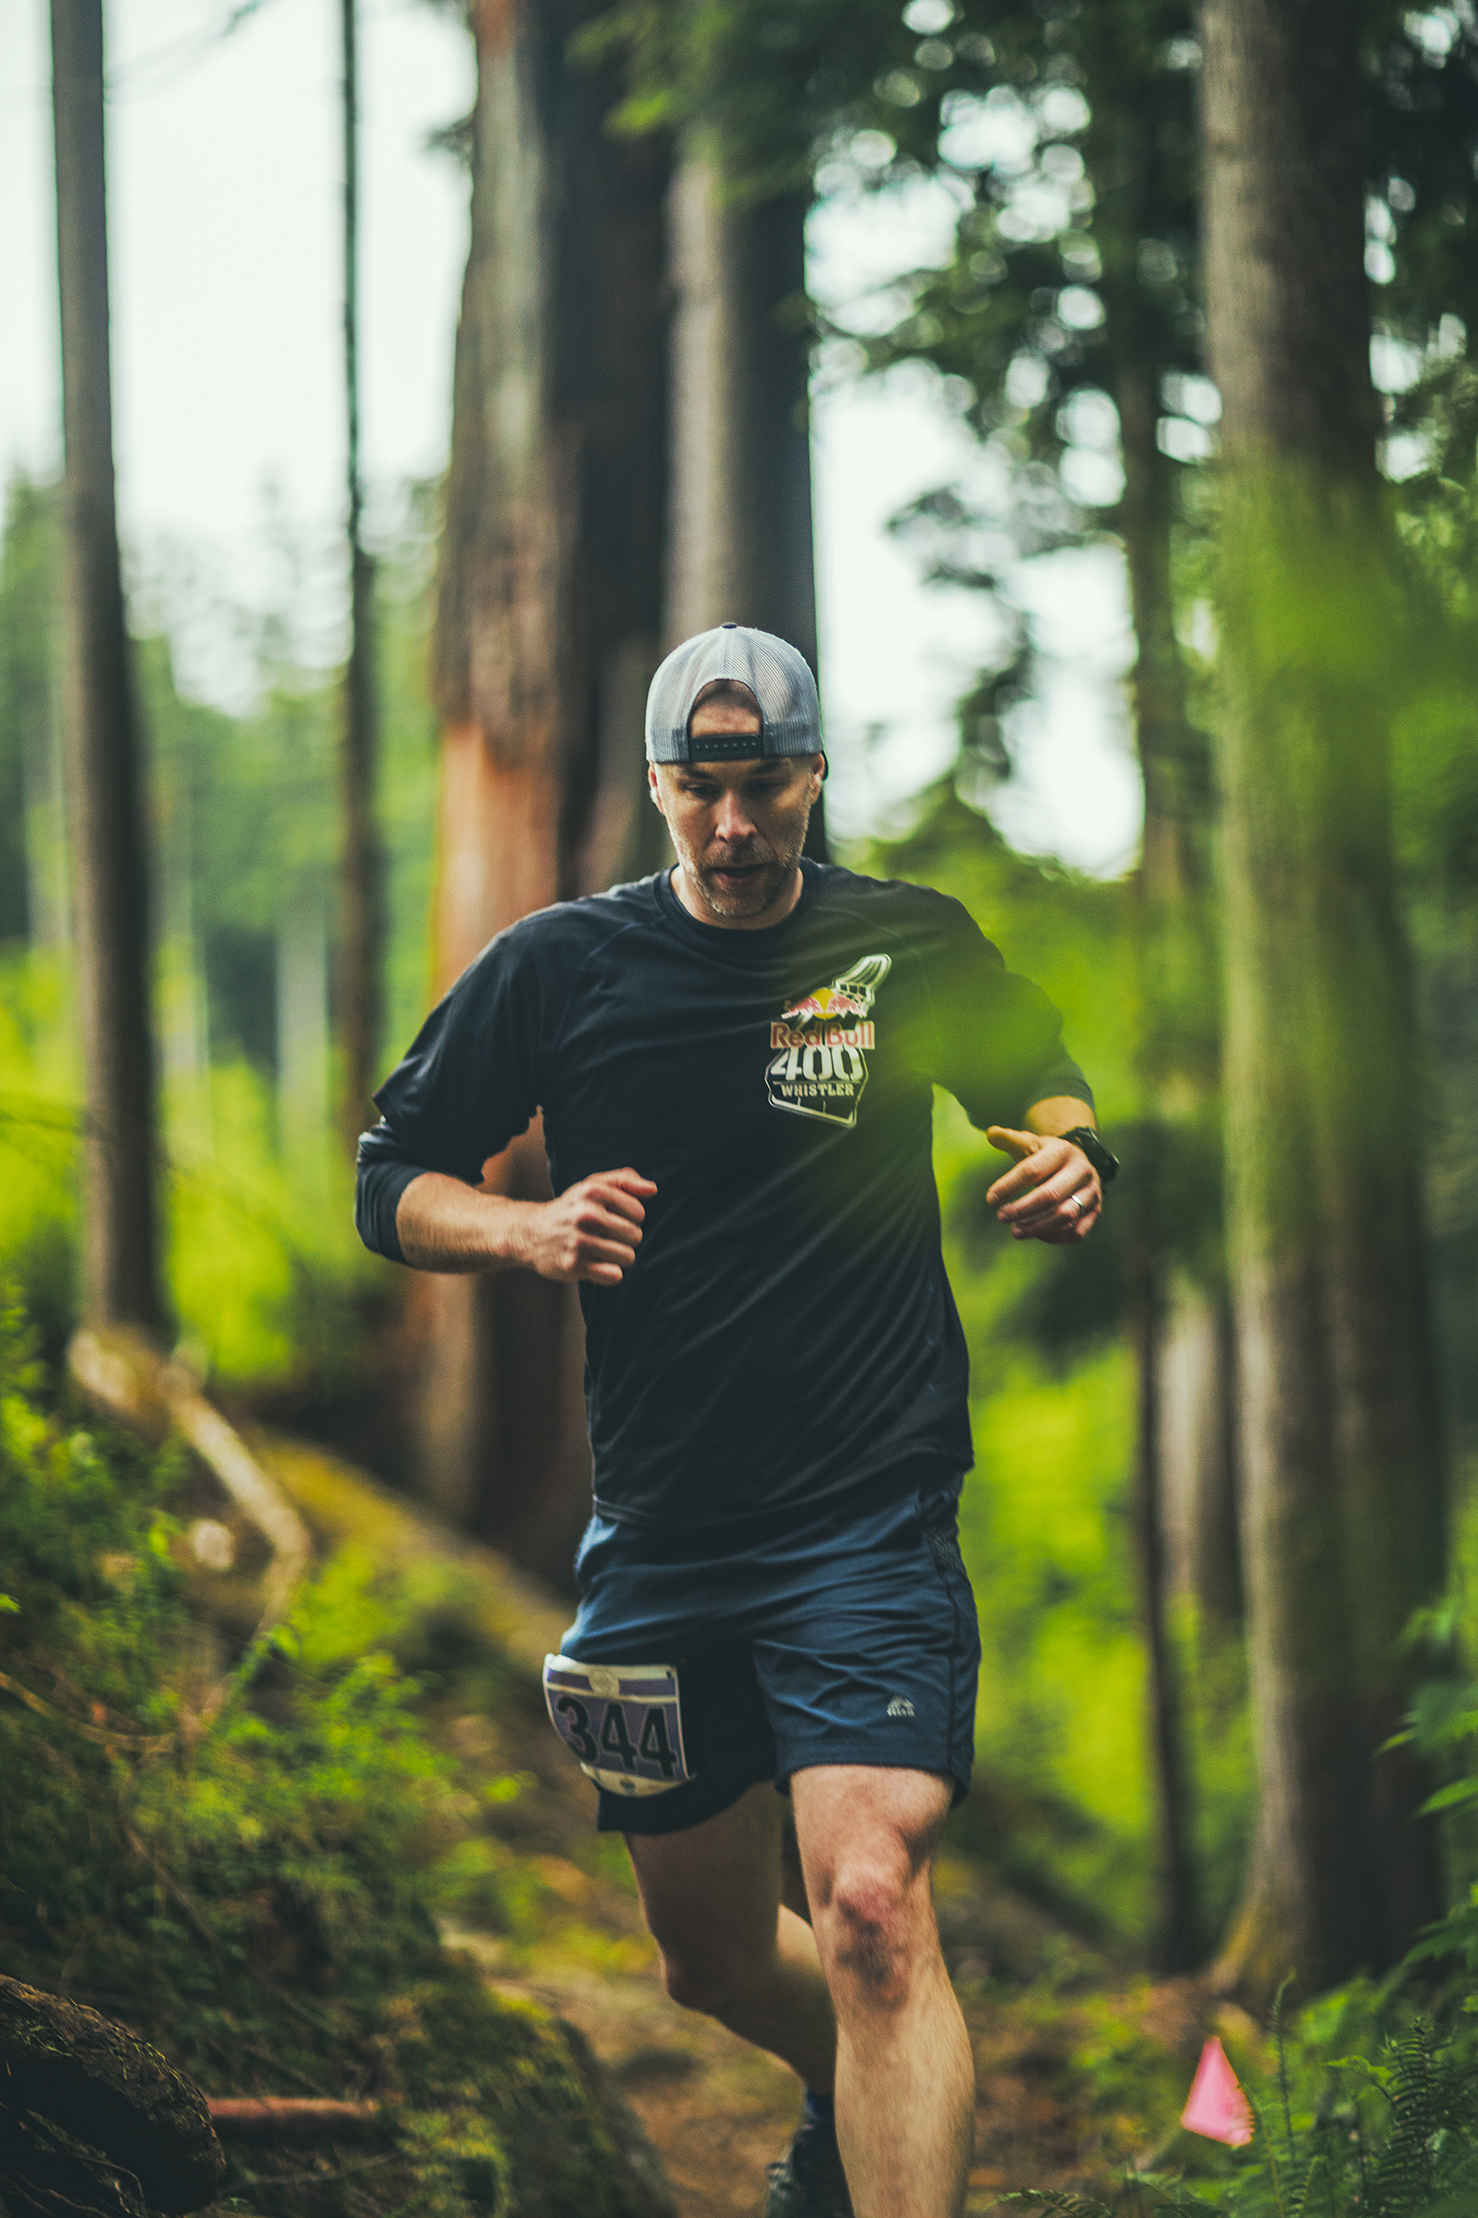 Fraser Valley Trail Races - Bear Mountain - IMG_1570 by Brice Ferre Studio - Vancouver Portrait Adventure and Athlete Photographer.jpg